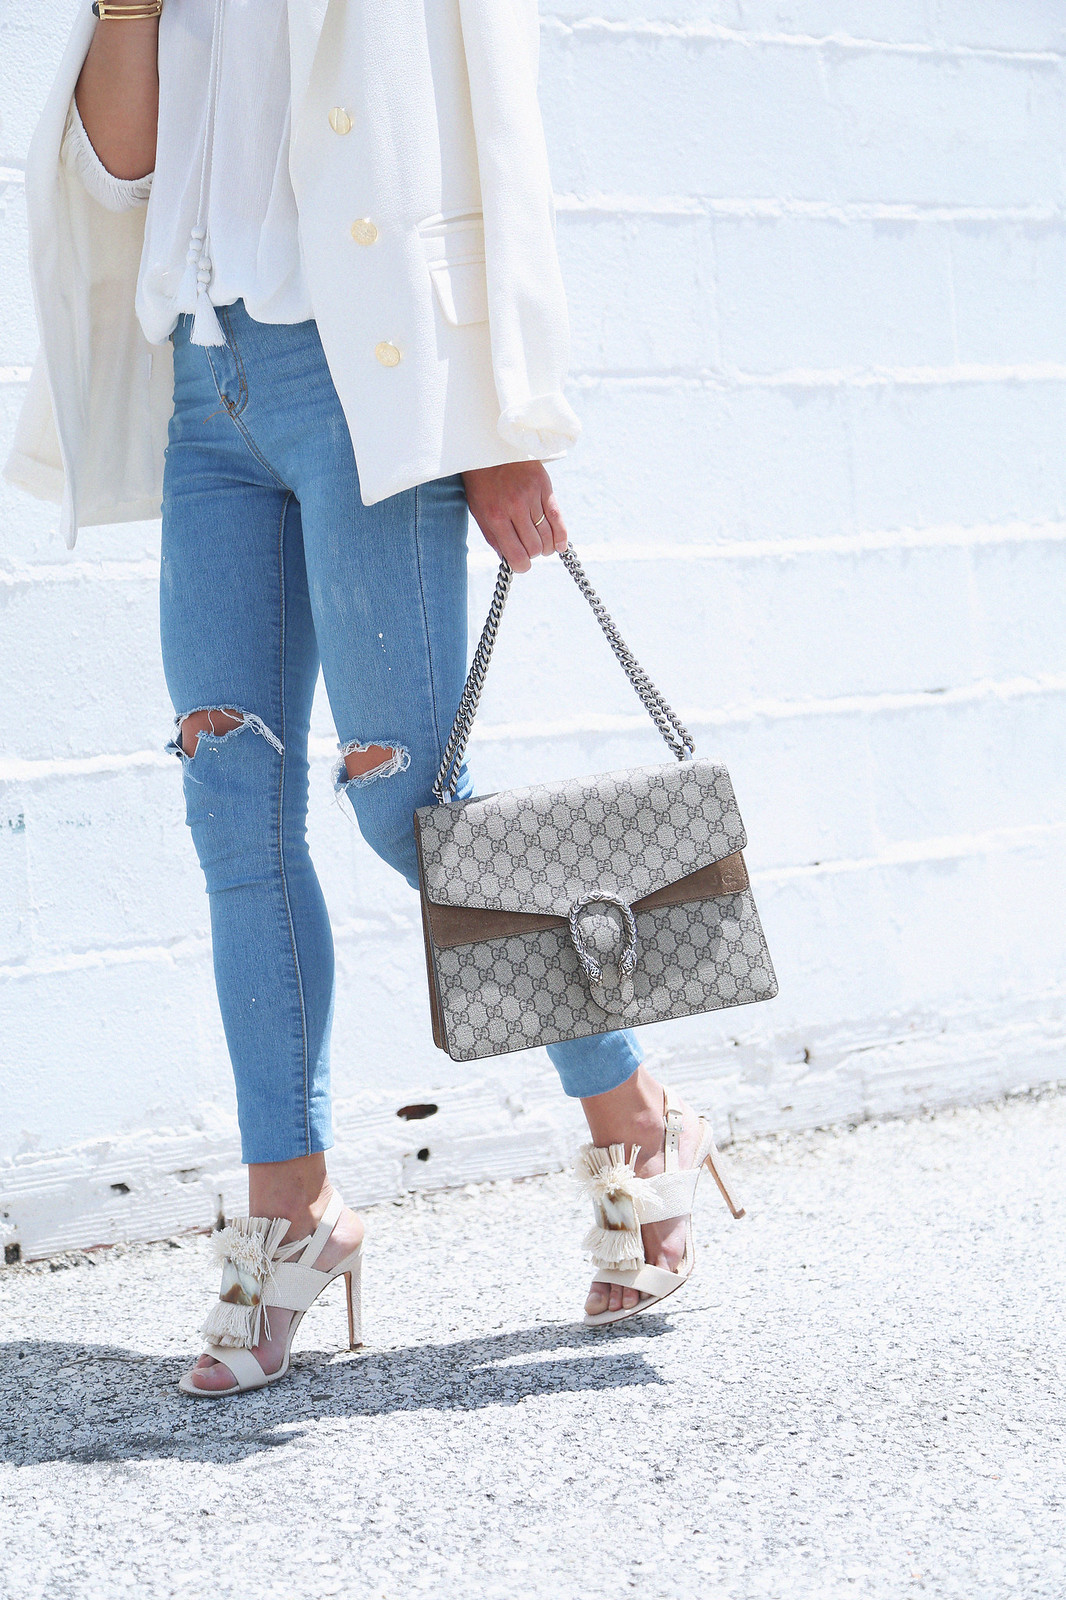 jessie chanes seams for a desire white off shoulder top high waisted jeans gucci bag uterque-15